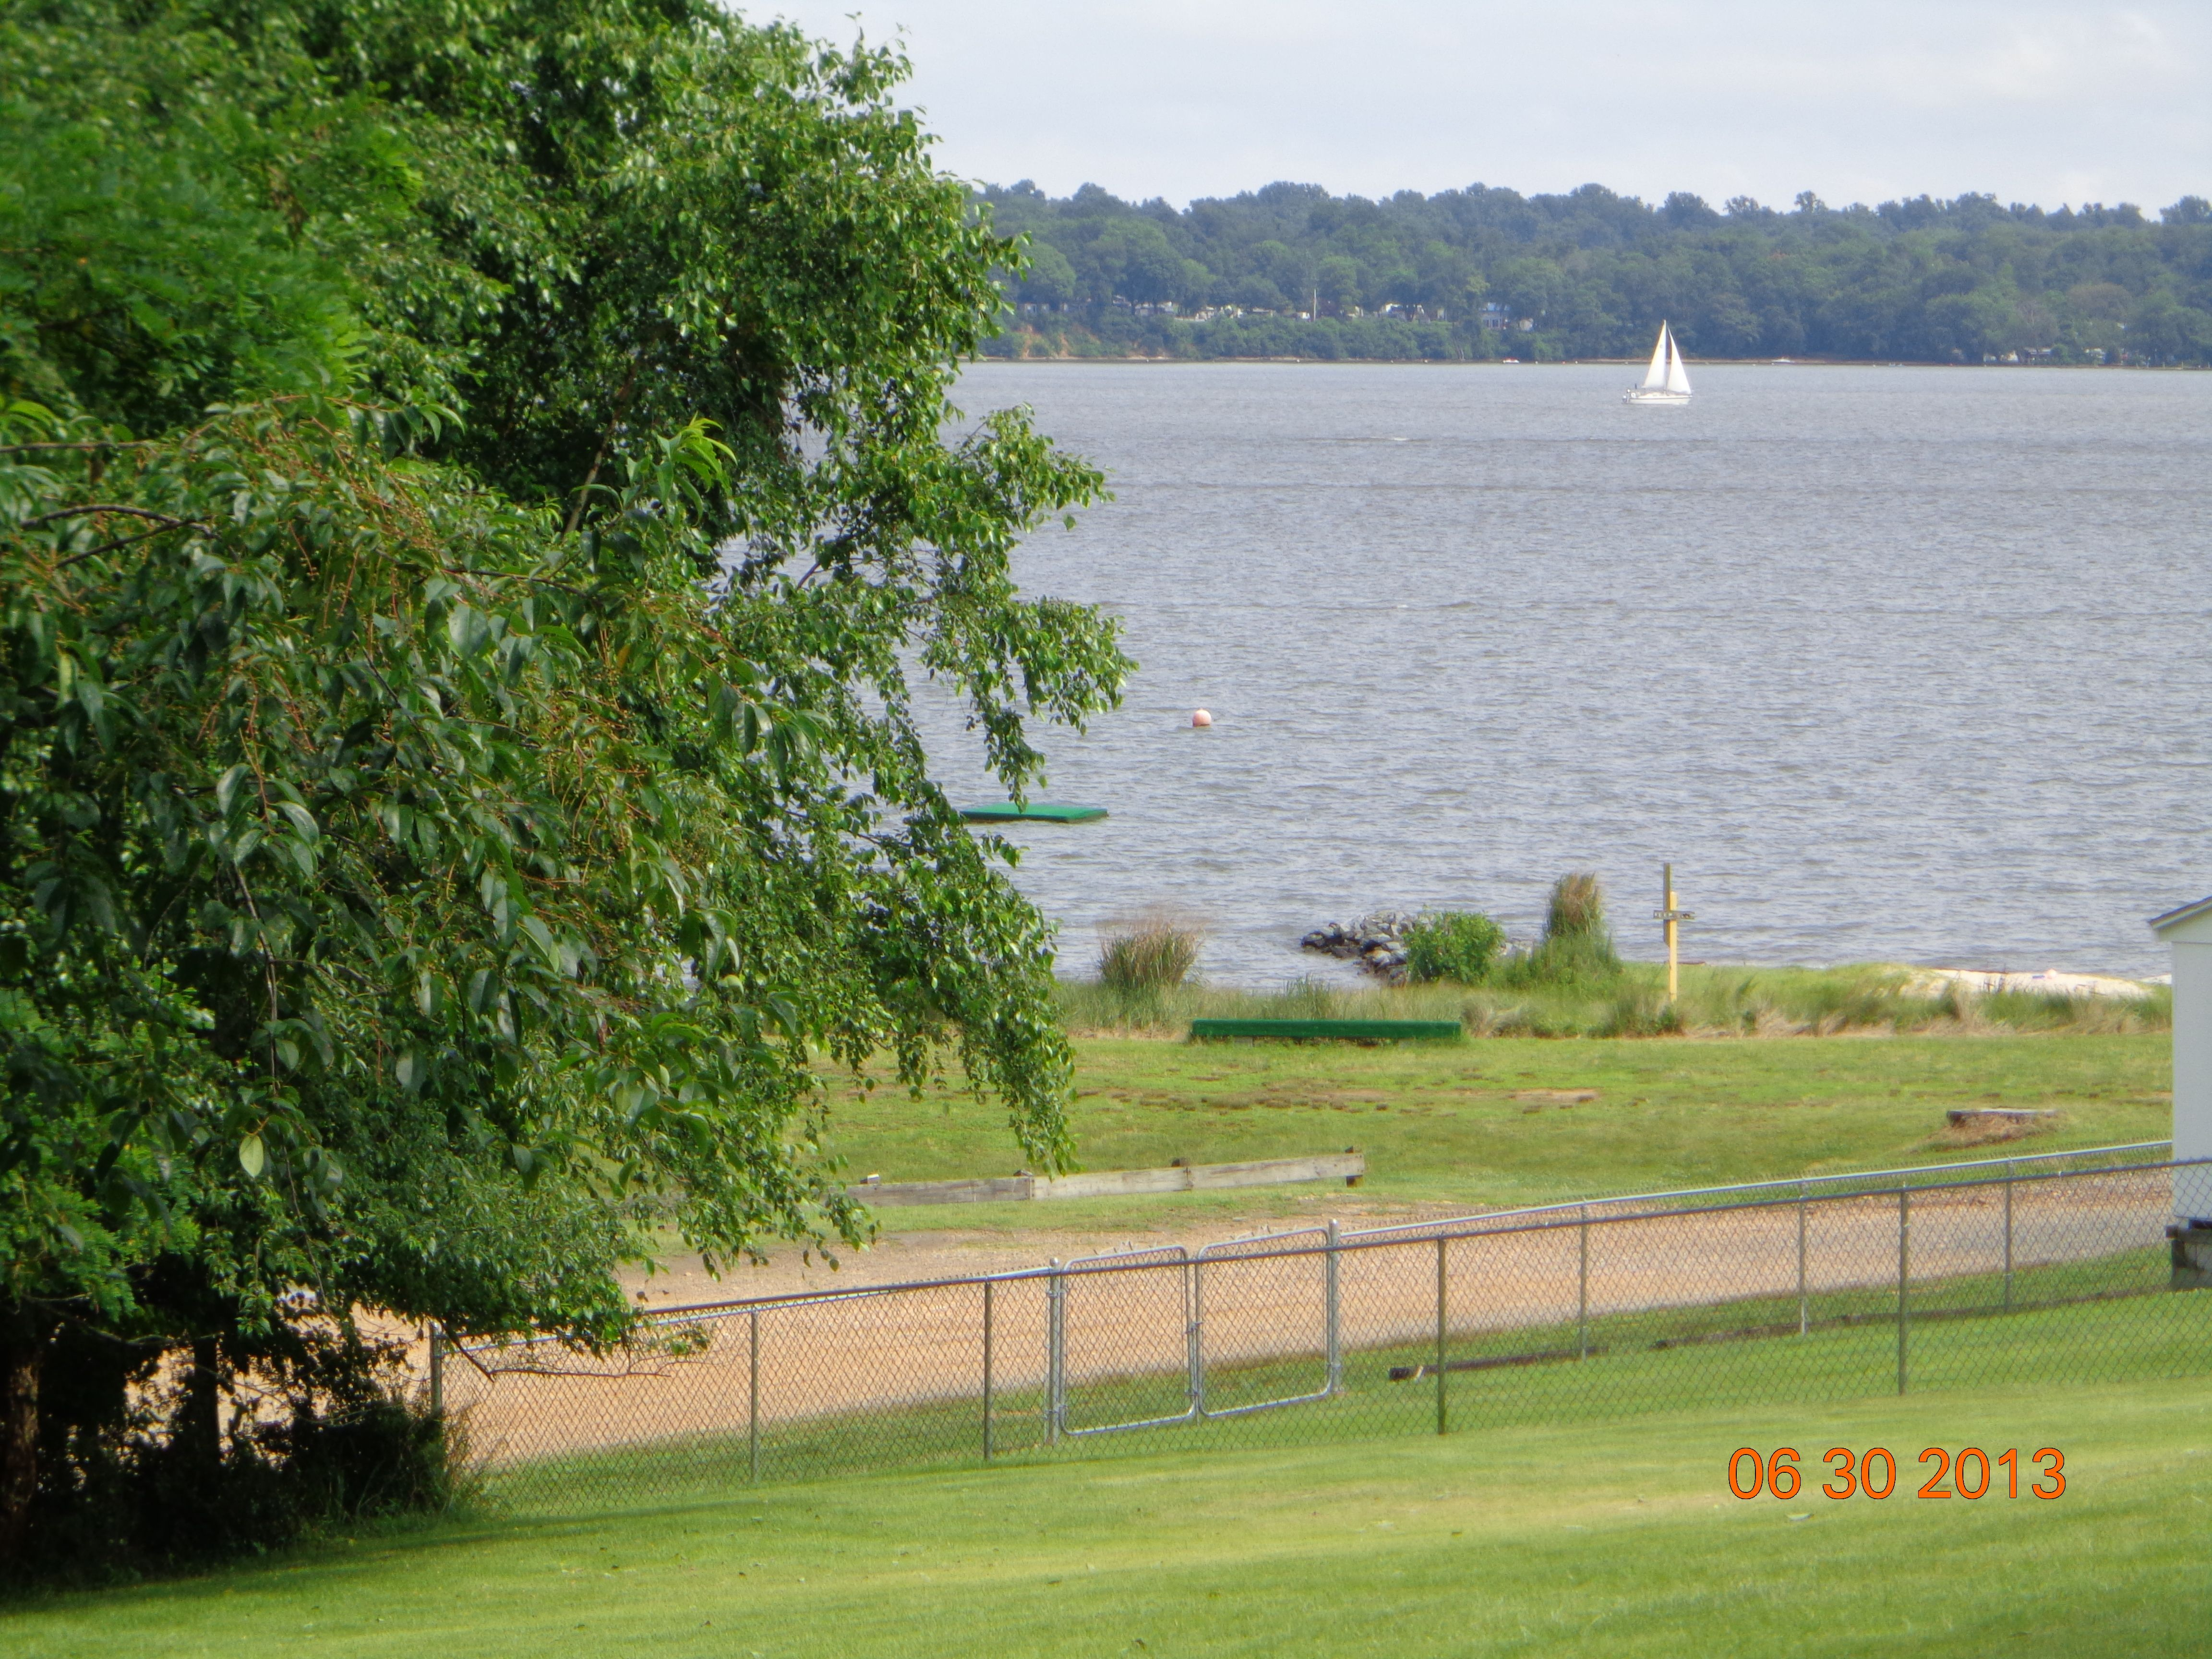 HOME FOR SALE....CHESAPEAKE ISLE...WATER ACCESS COMMUNITY....147 CLIFFVIEW DR. NORTH EAST, MD 21901  BACKS TO BEACH ...